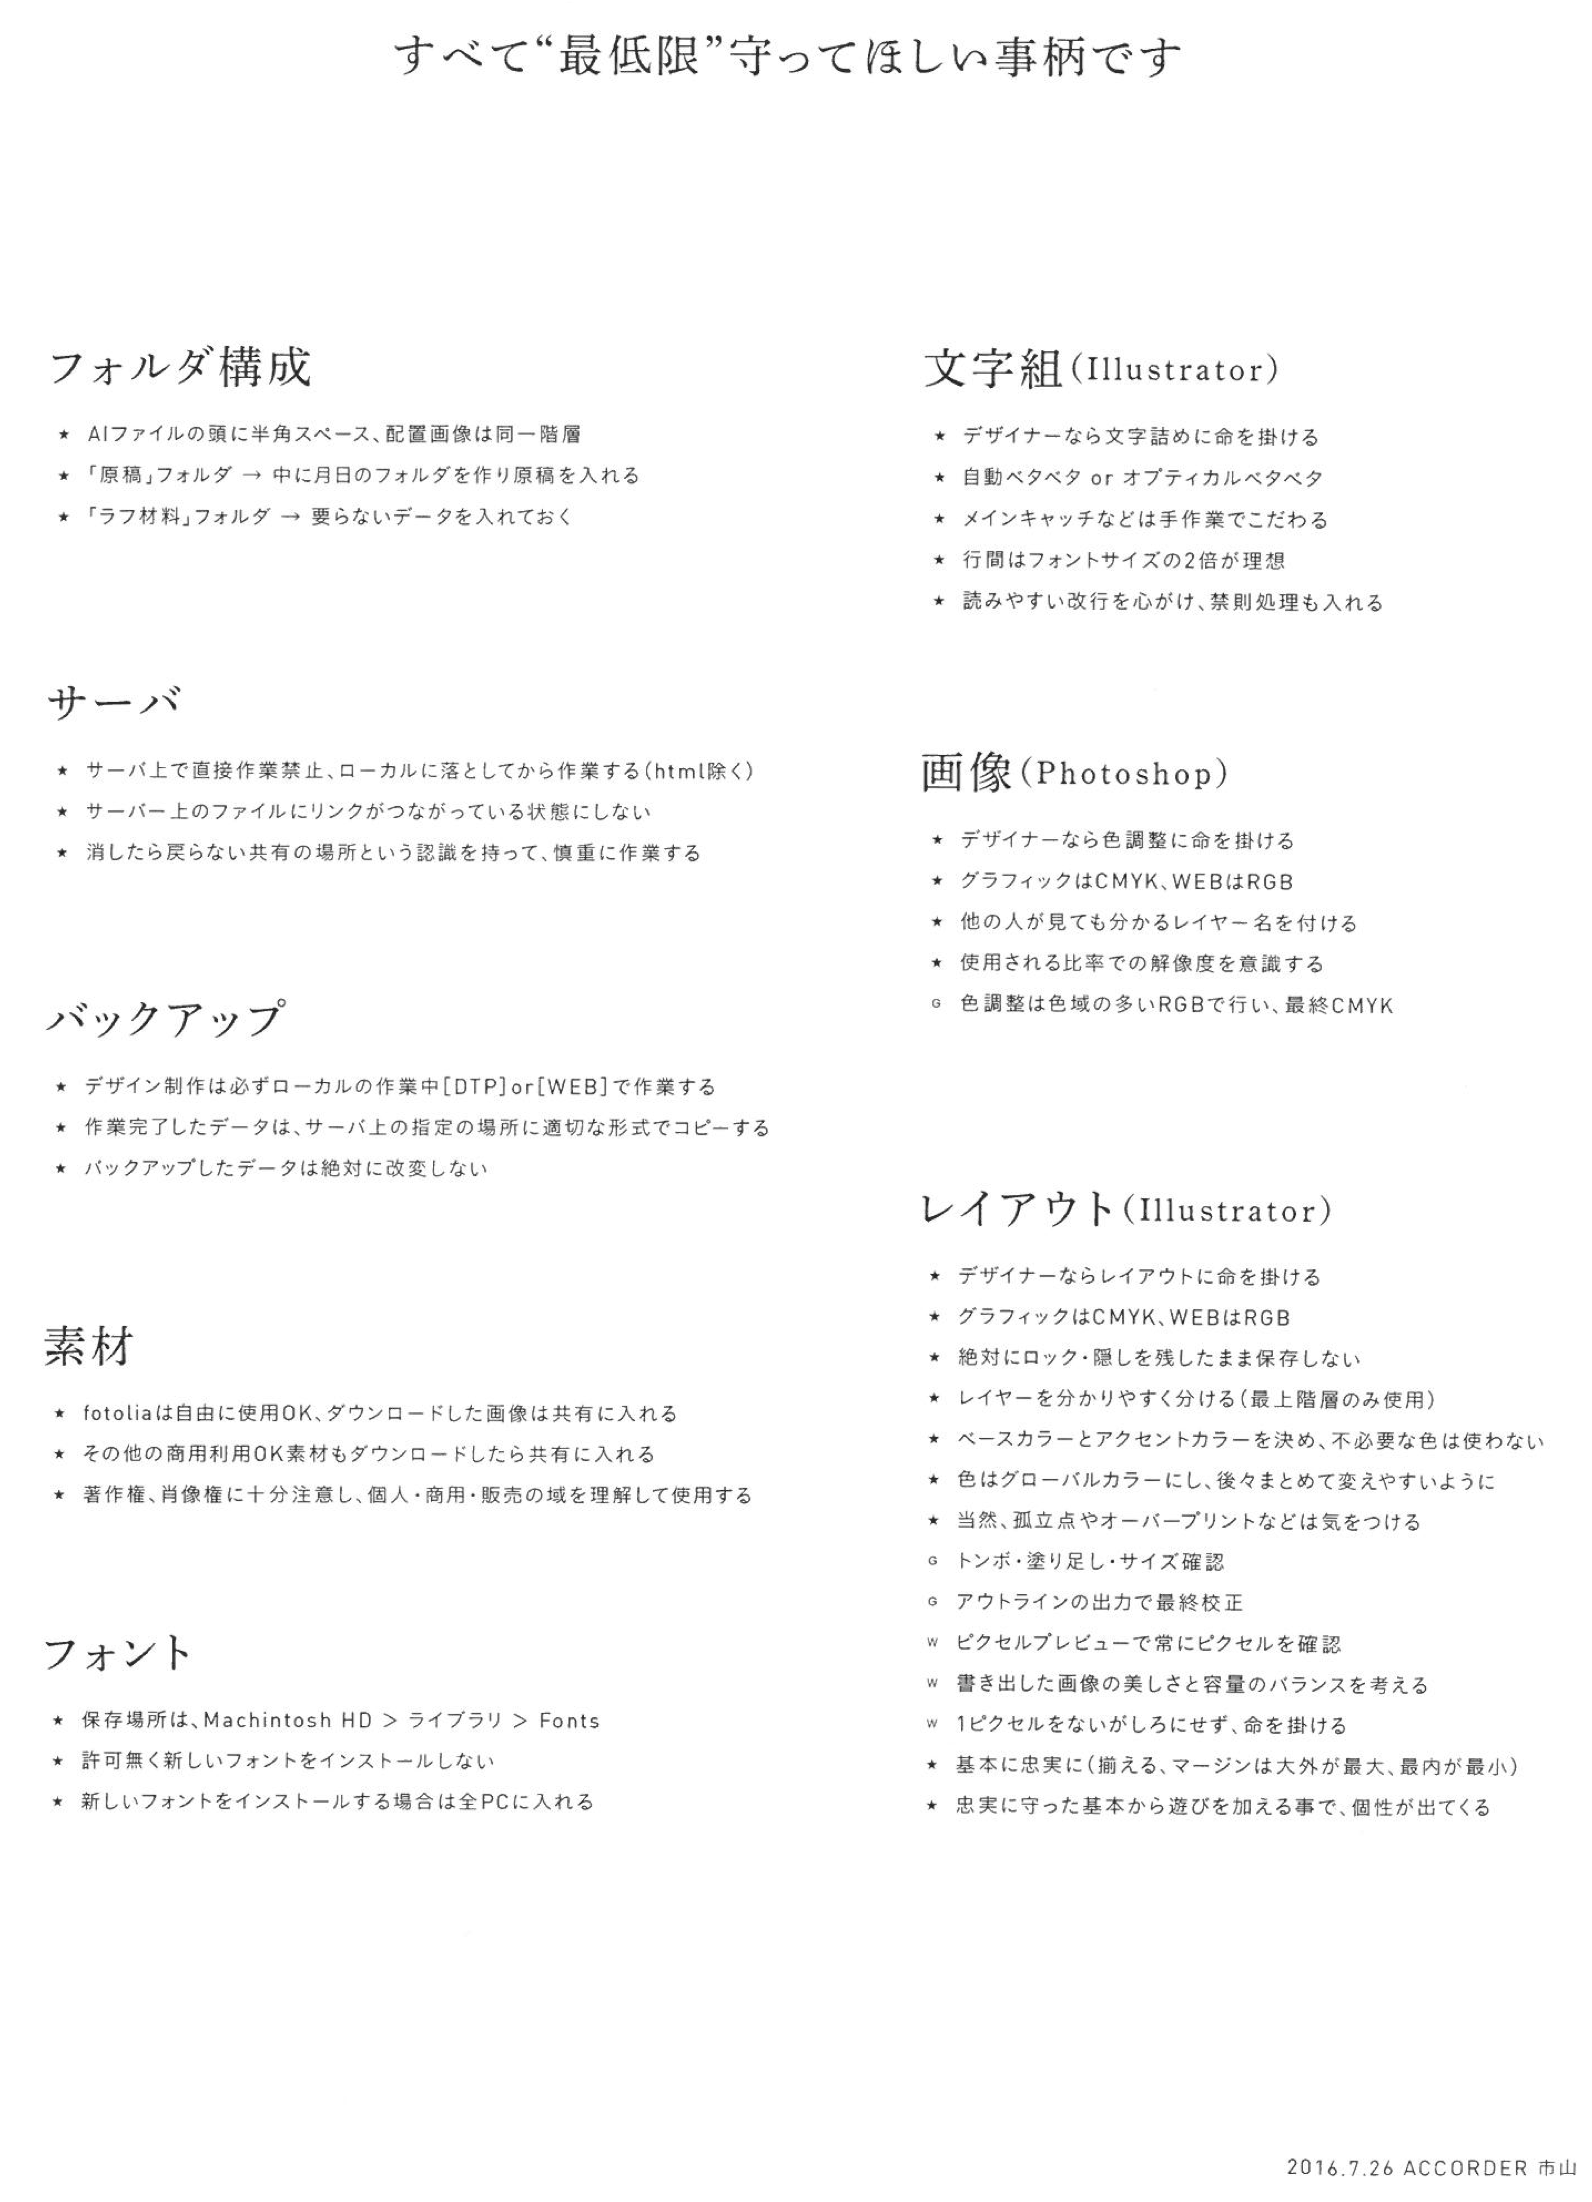 accorder_design_checklist